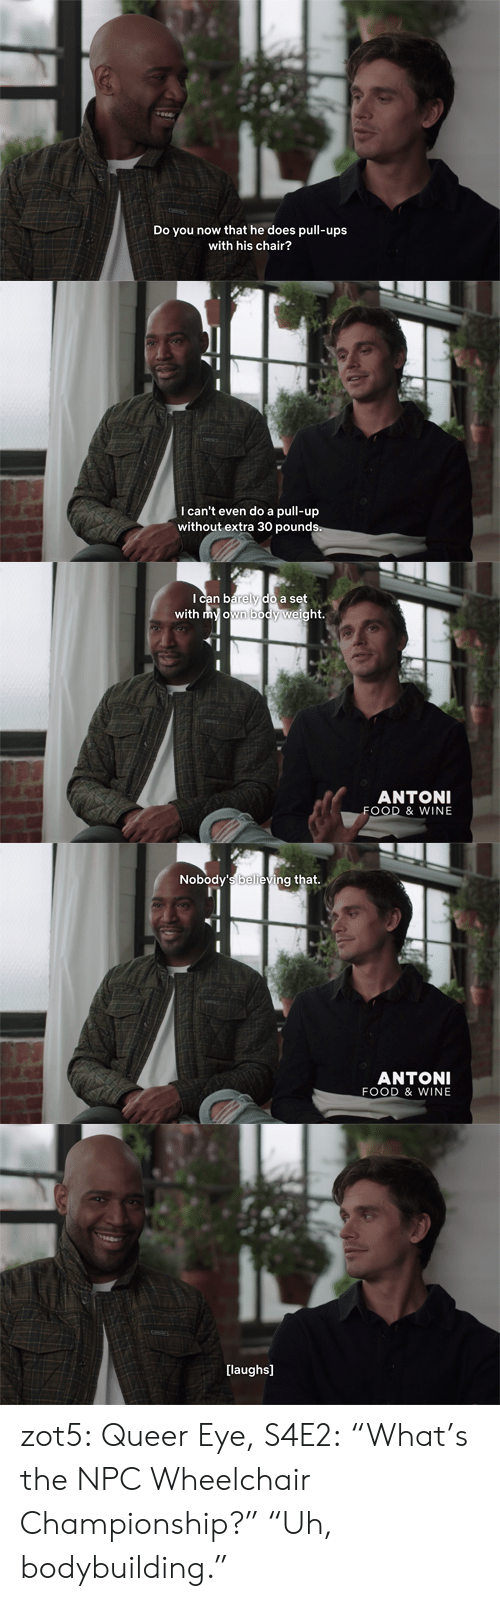 "Food, Target, and Tumblr: Do y  now that he does pull-ups  with his chair?   I can't even do a pull-up  without extra 30 pounds   Ican barely do a set  with my own body weight.  ANTONI  FOOD & WINE   Nobody's believing that.  ANTONI  FOOD & WINE   [laughs] zot5:  Queer Eye, S4E2: ""What's the NPC Wheelchair Championship?"" ""Uh, bodybuilding."""